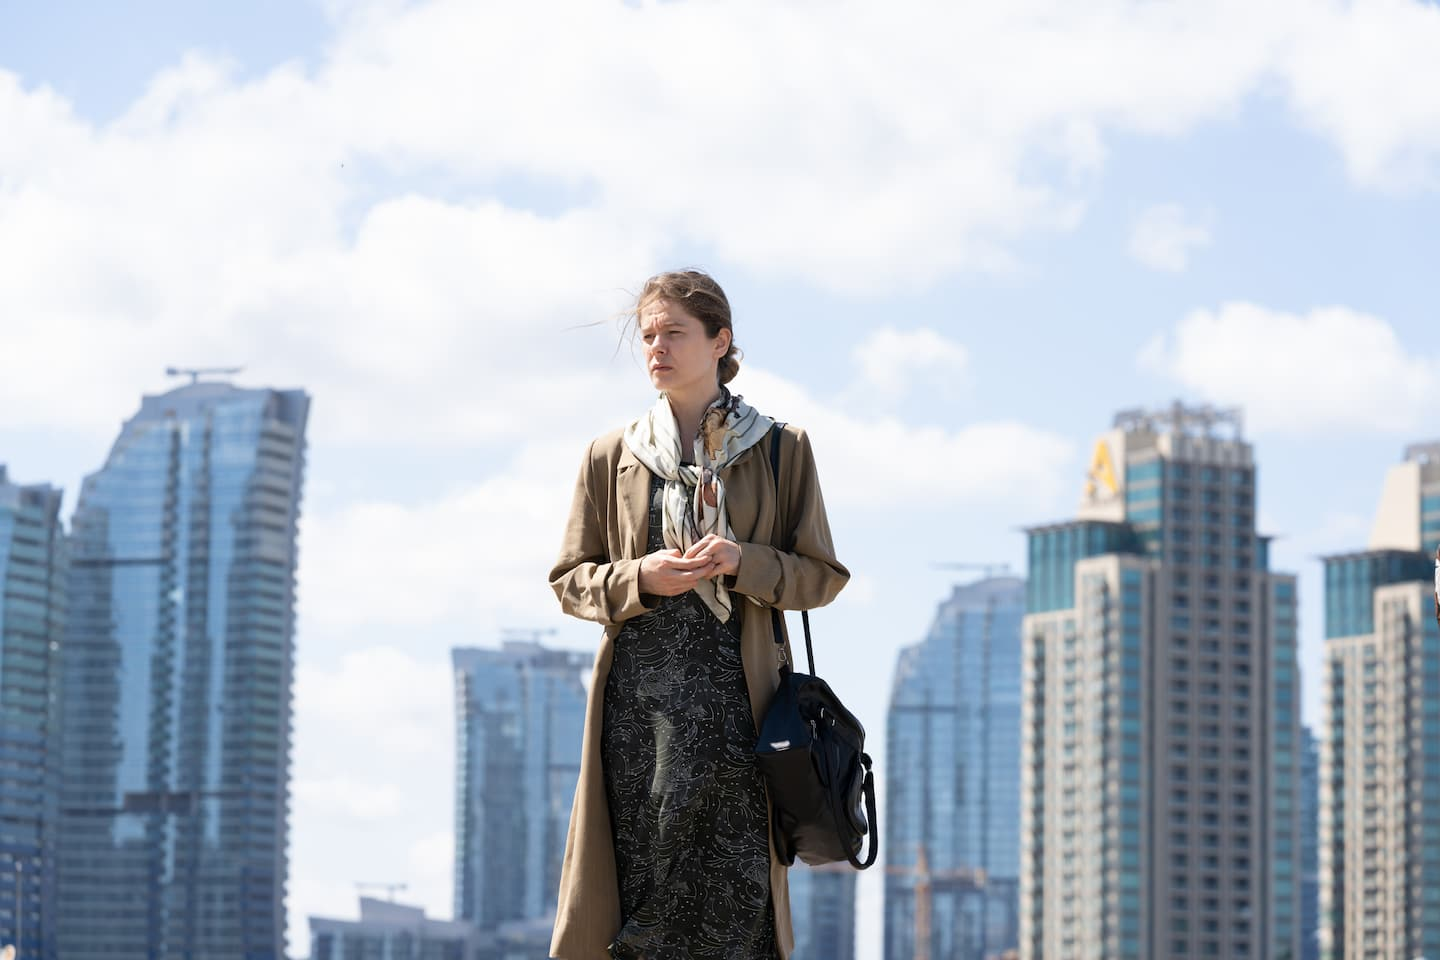 What to watch on Tuesday: 'Fatma' premieres on Netflix